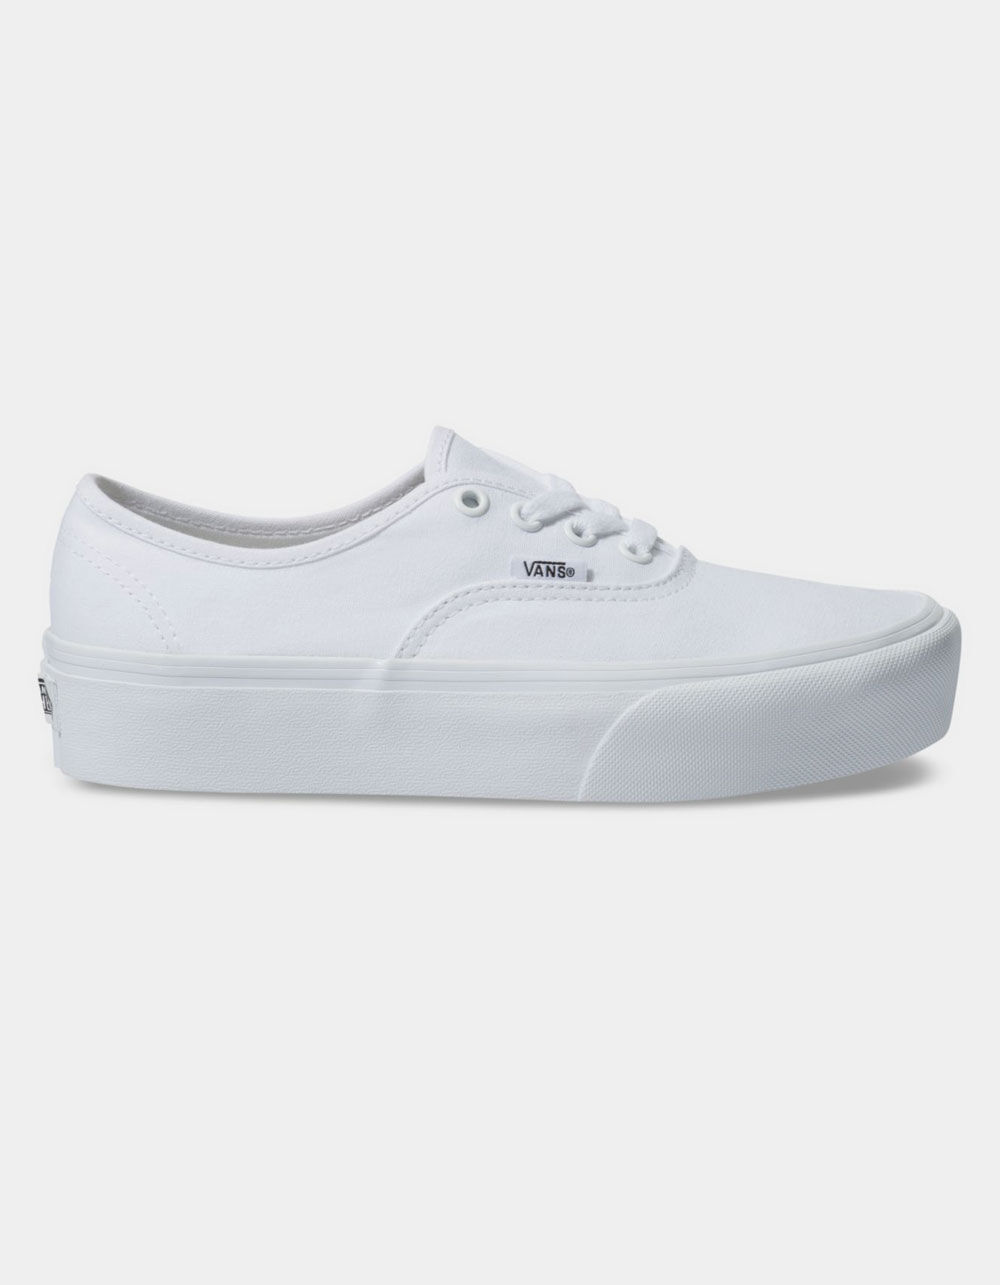 VANS Authentic Platform 2.0 True White Shoes